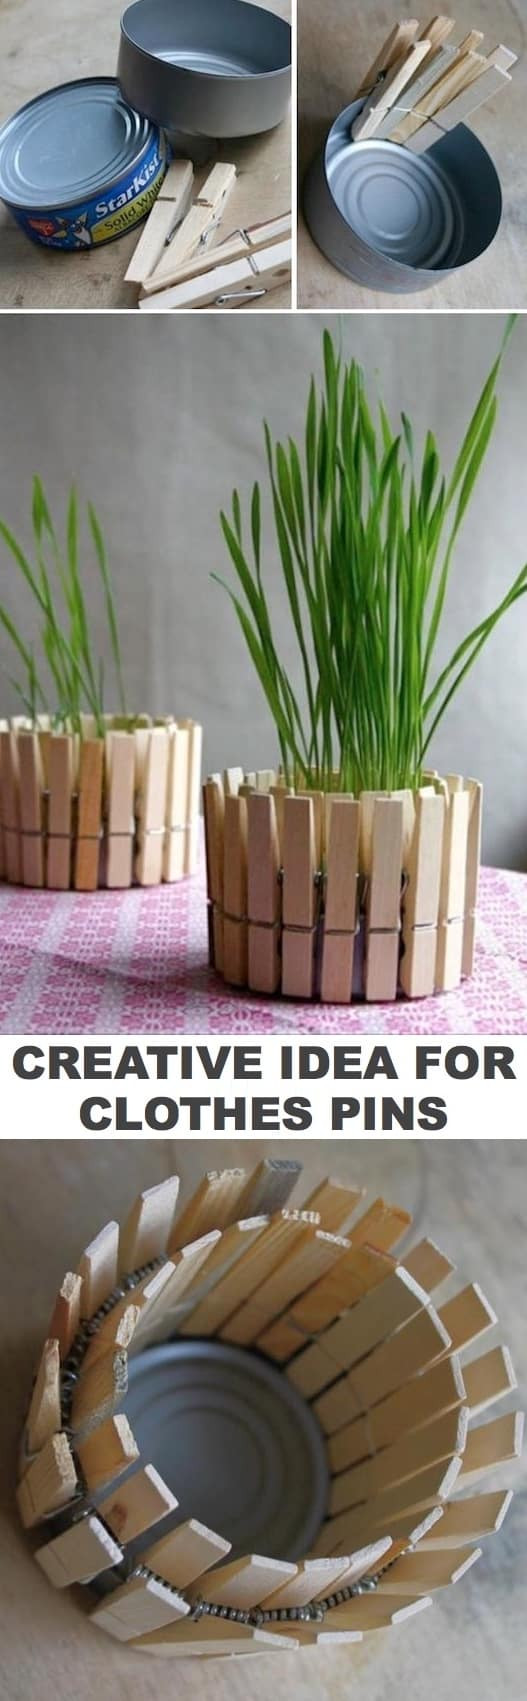 Craft Activities For Adults  Easy DIY Craft Ideas That Will Spark Your Creativity for